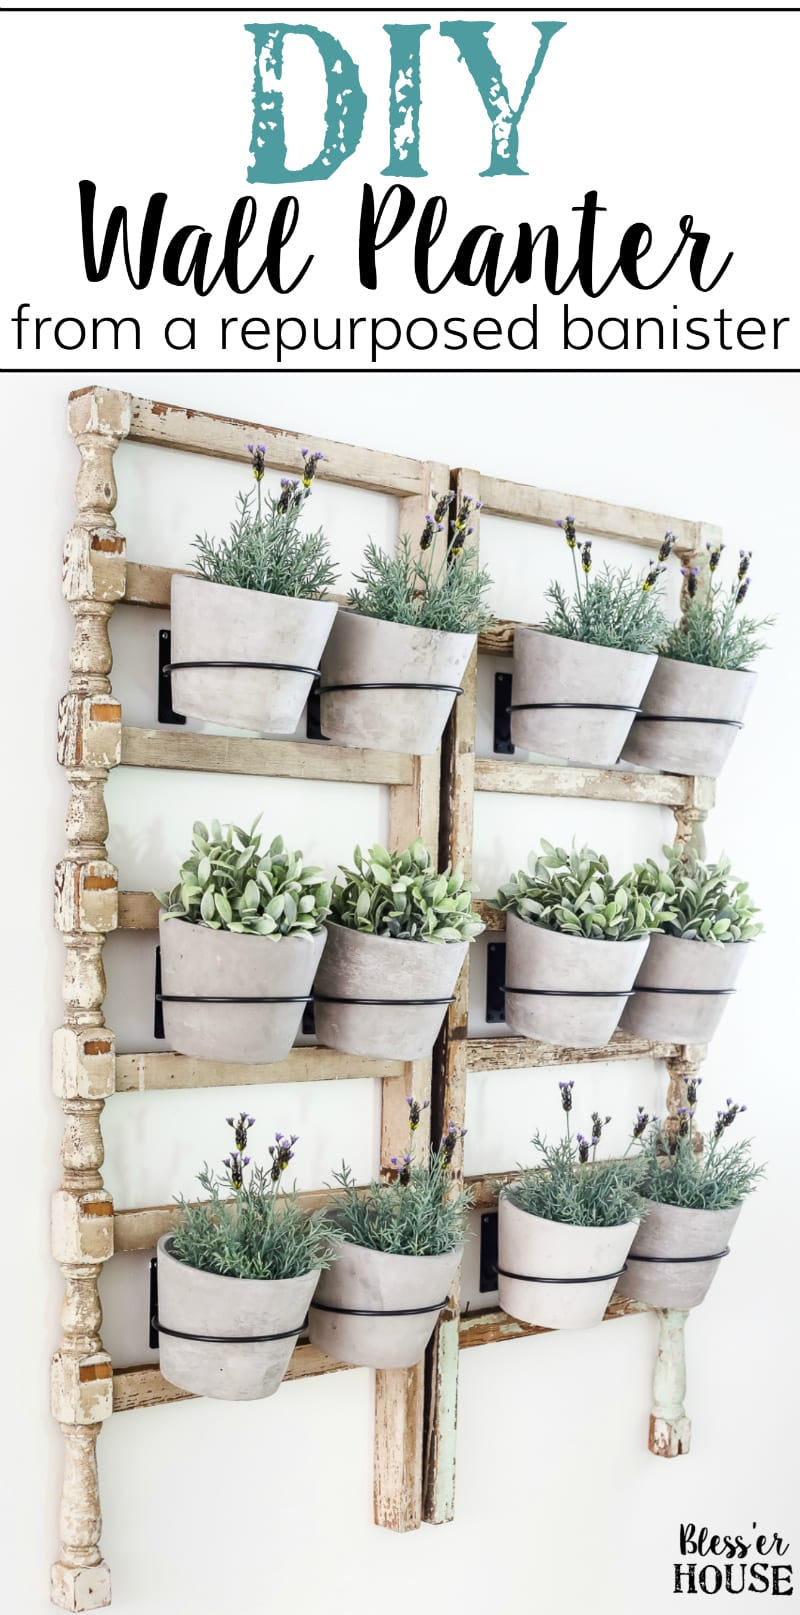 DIY Antique Banister Wall Planter | www.blesserhouse.com - A quick and simple tutorial for how to make a wall planter from a repurposed antique banister using artificial plants. Cute way to bring the outdoors in!